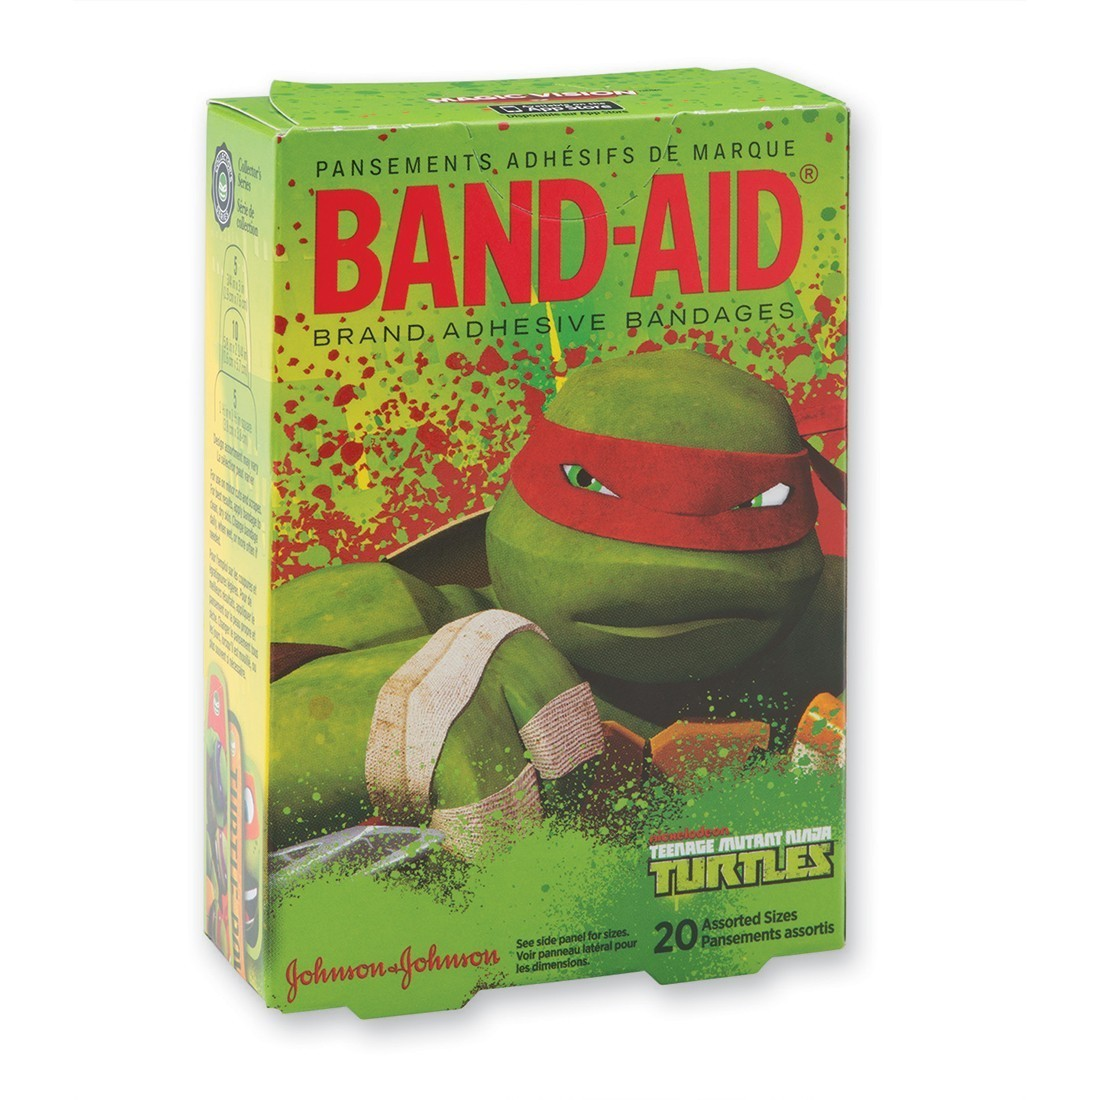 Band-Aid Teenage Mutant Ninja Turtles Bandages [image]